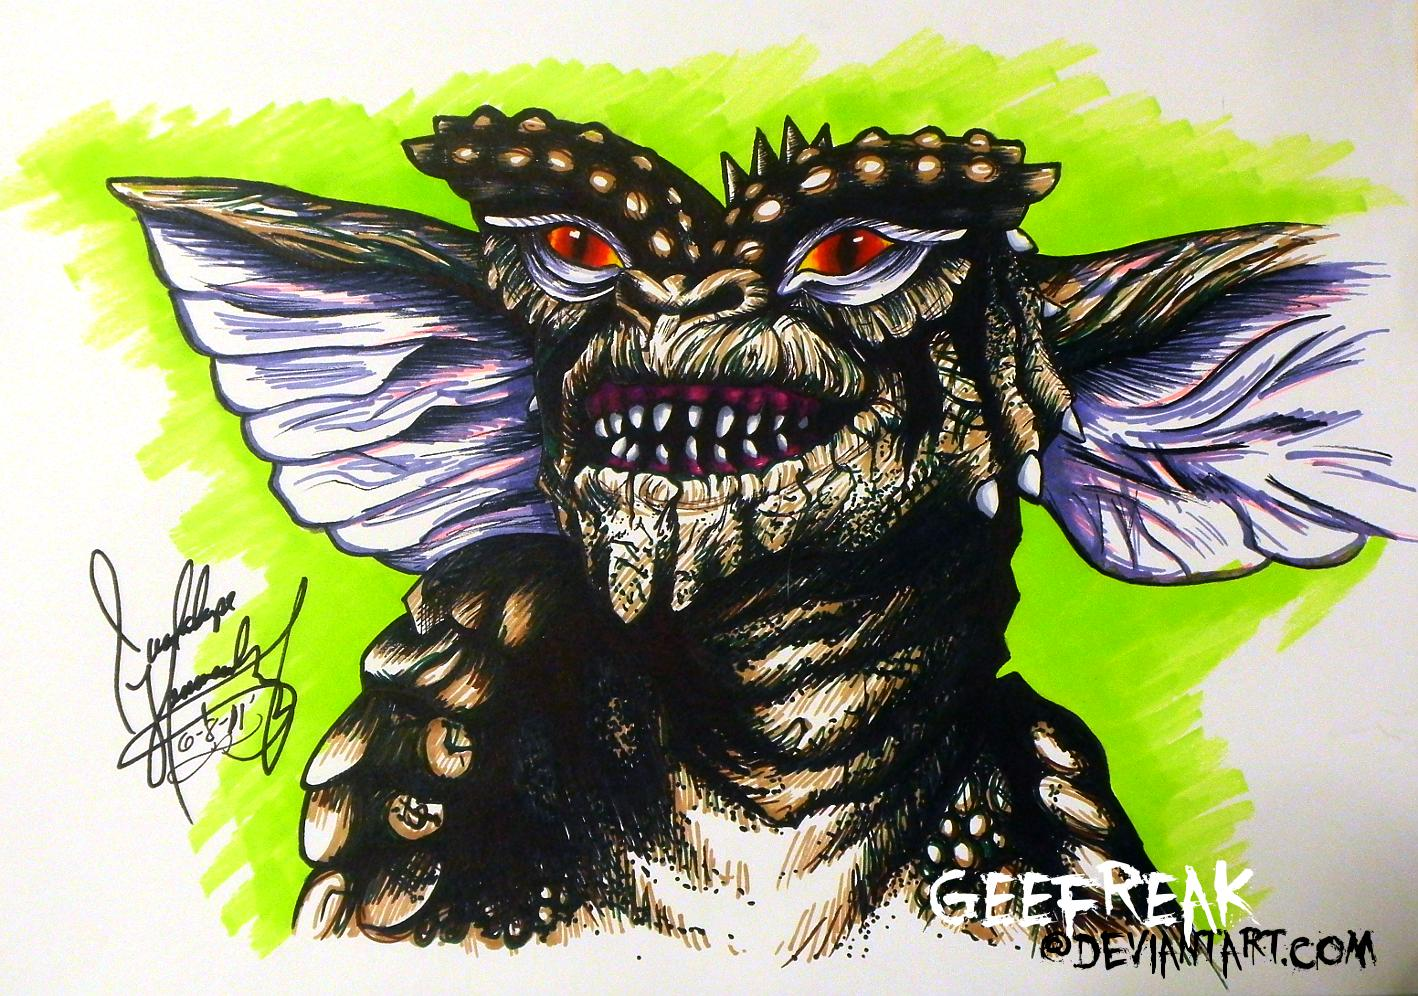 Gremlins-sketch by GeeFreak